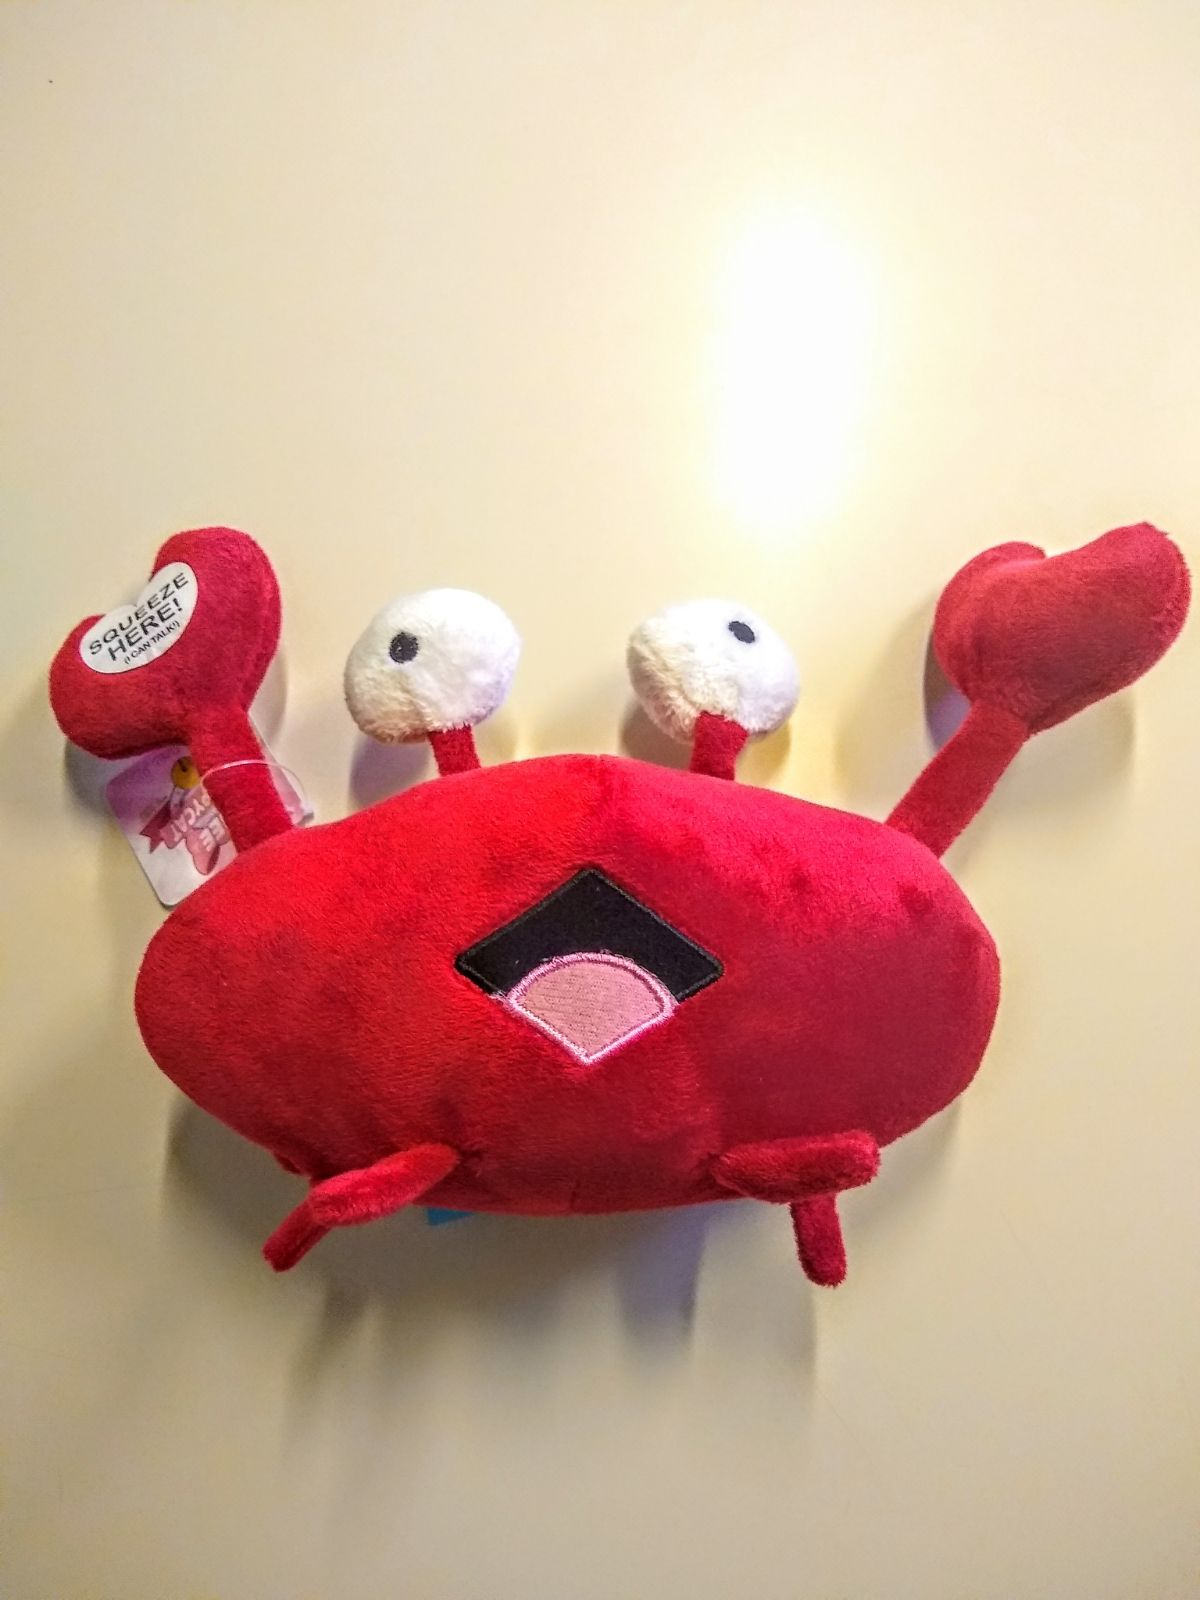 Bee And PuppyCat: Keith the Crab Plush